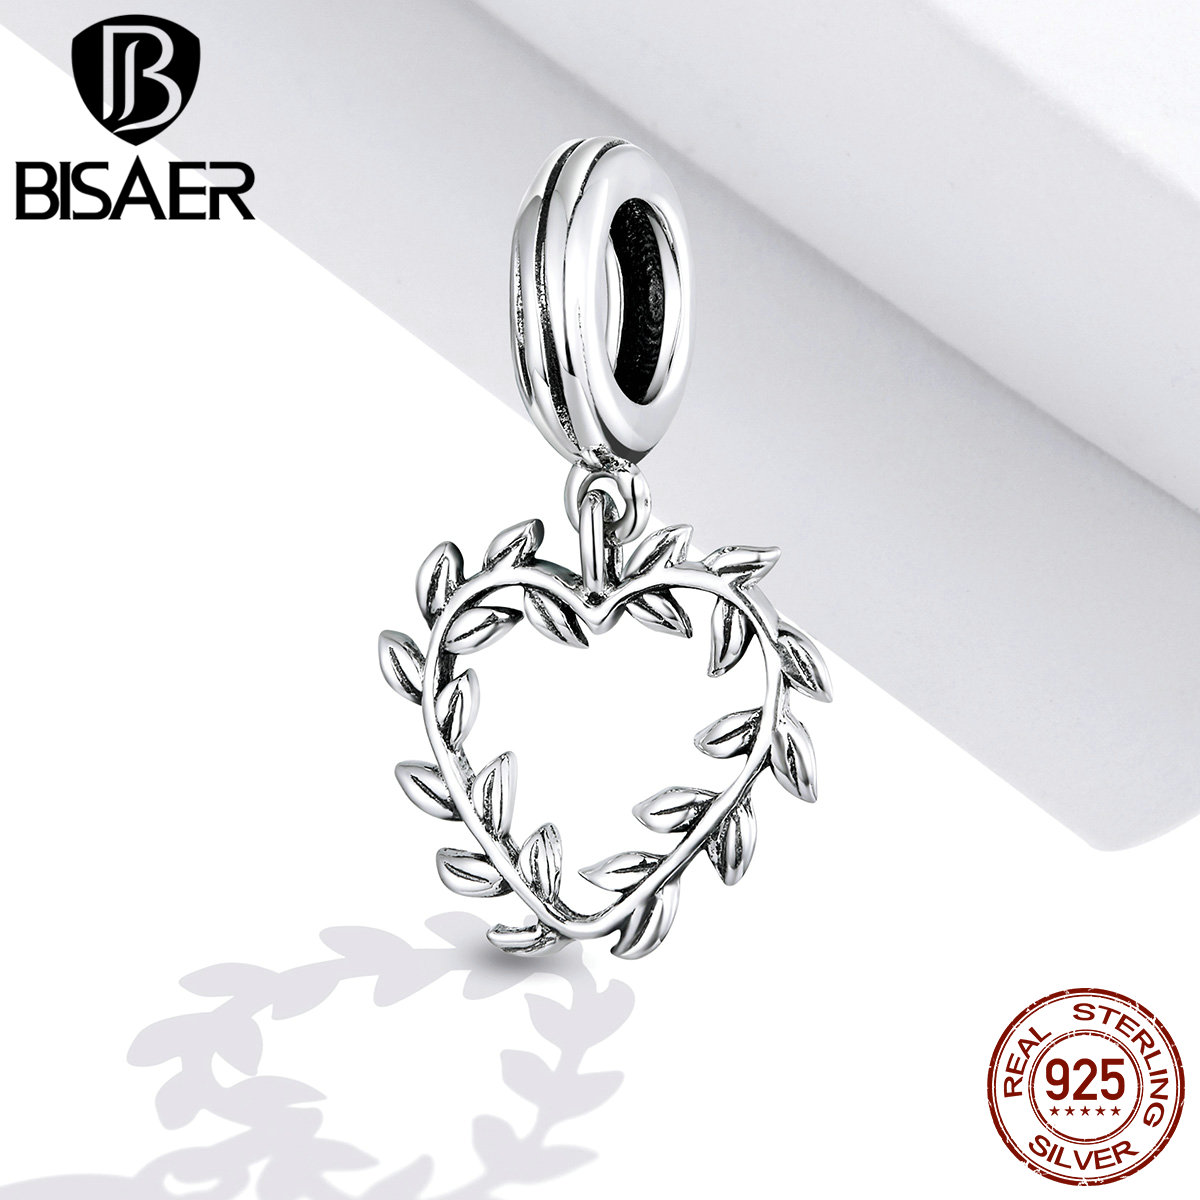 BISAER Branches Charm 100% 925 Sterling Silver Heart Flower Beads Pendant DIY Bracelets Necklace Fashion S925 Jewelry ECC1520